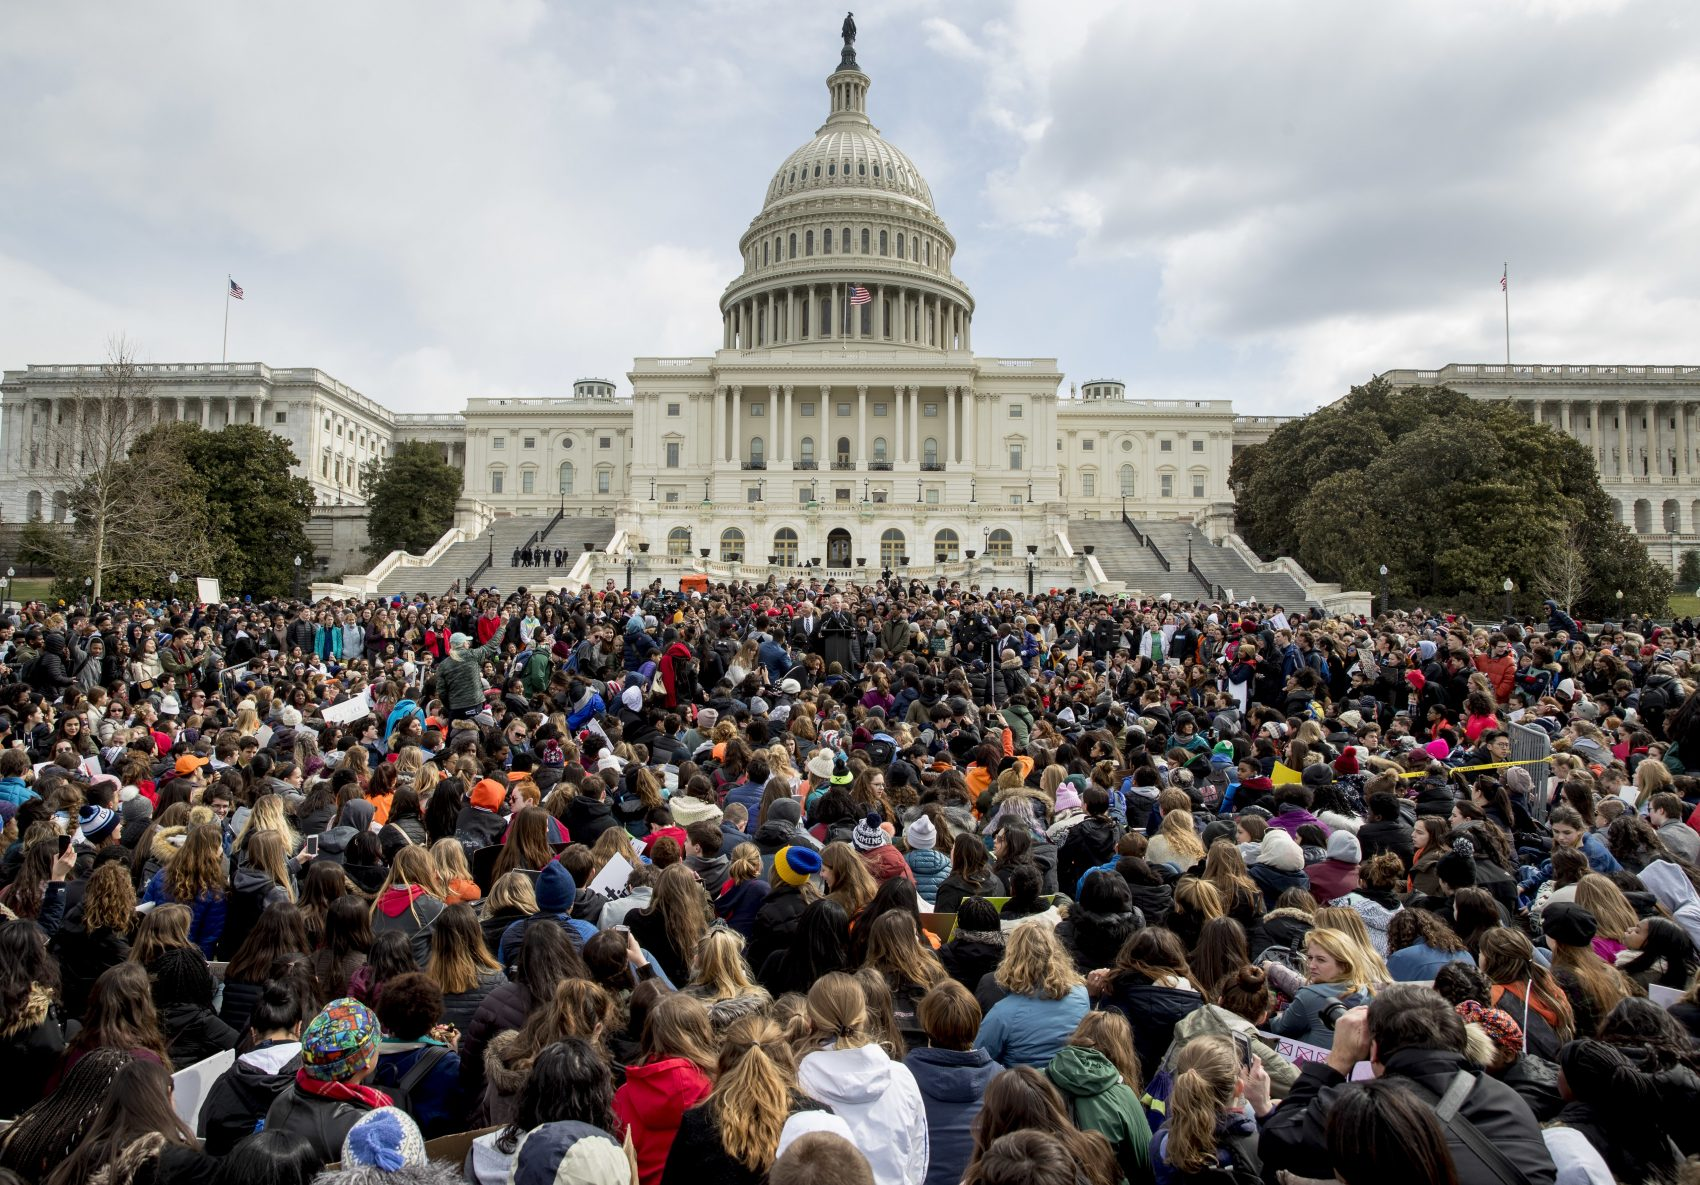 Students rally outside the Capitol Building in Washington. (Andrew Harnik/AP)